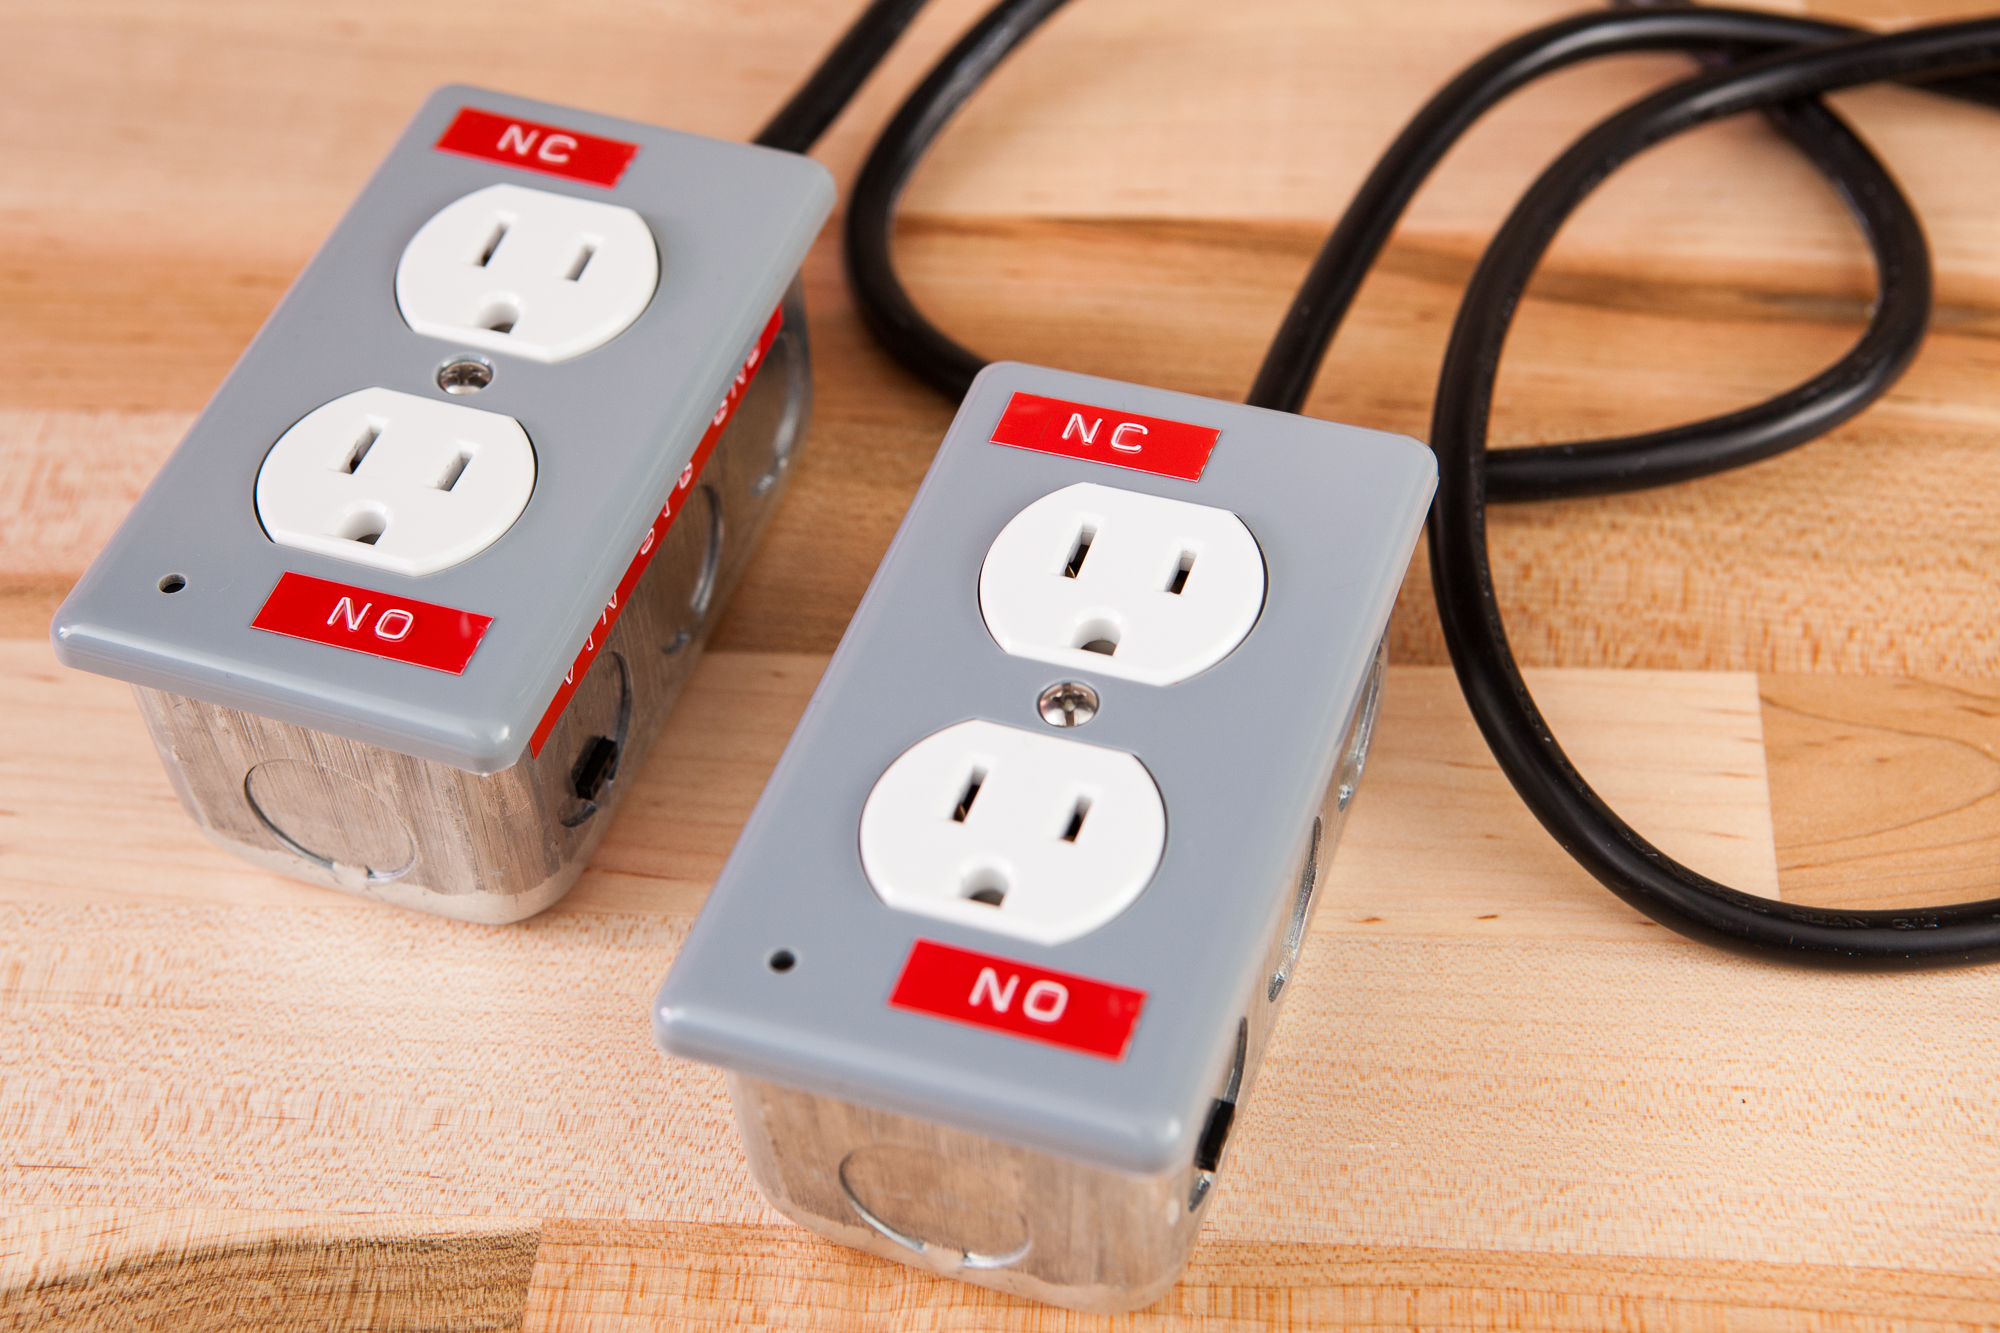 Relay Boxes For Controlling 120v Power With A Microcontroller Wiring Up 110v Plug